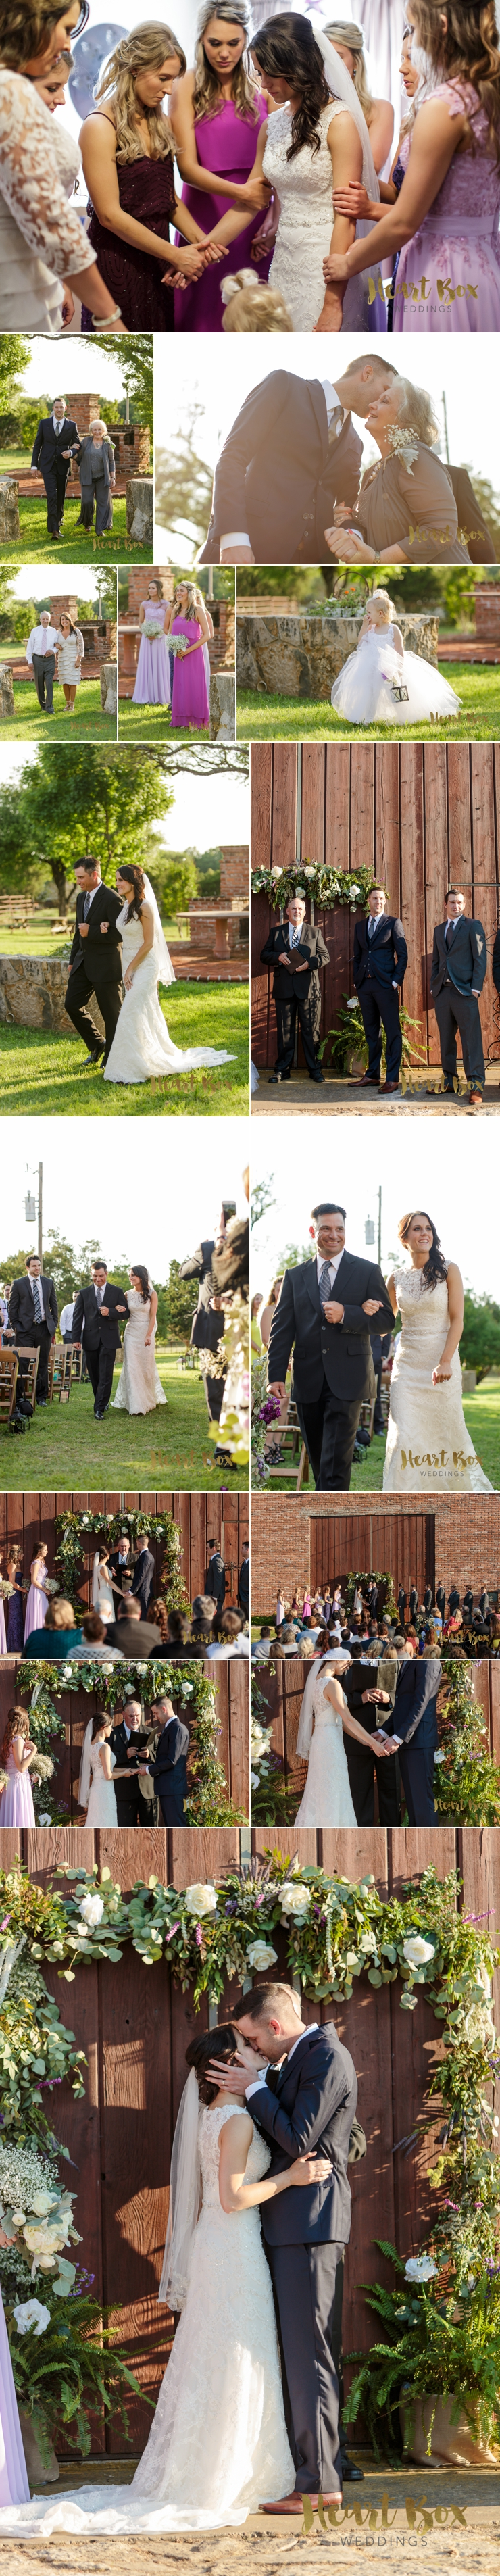 Thomas Wedding Blog Collages 5.jpg